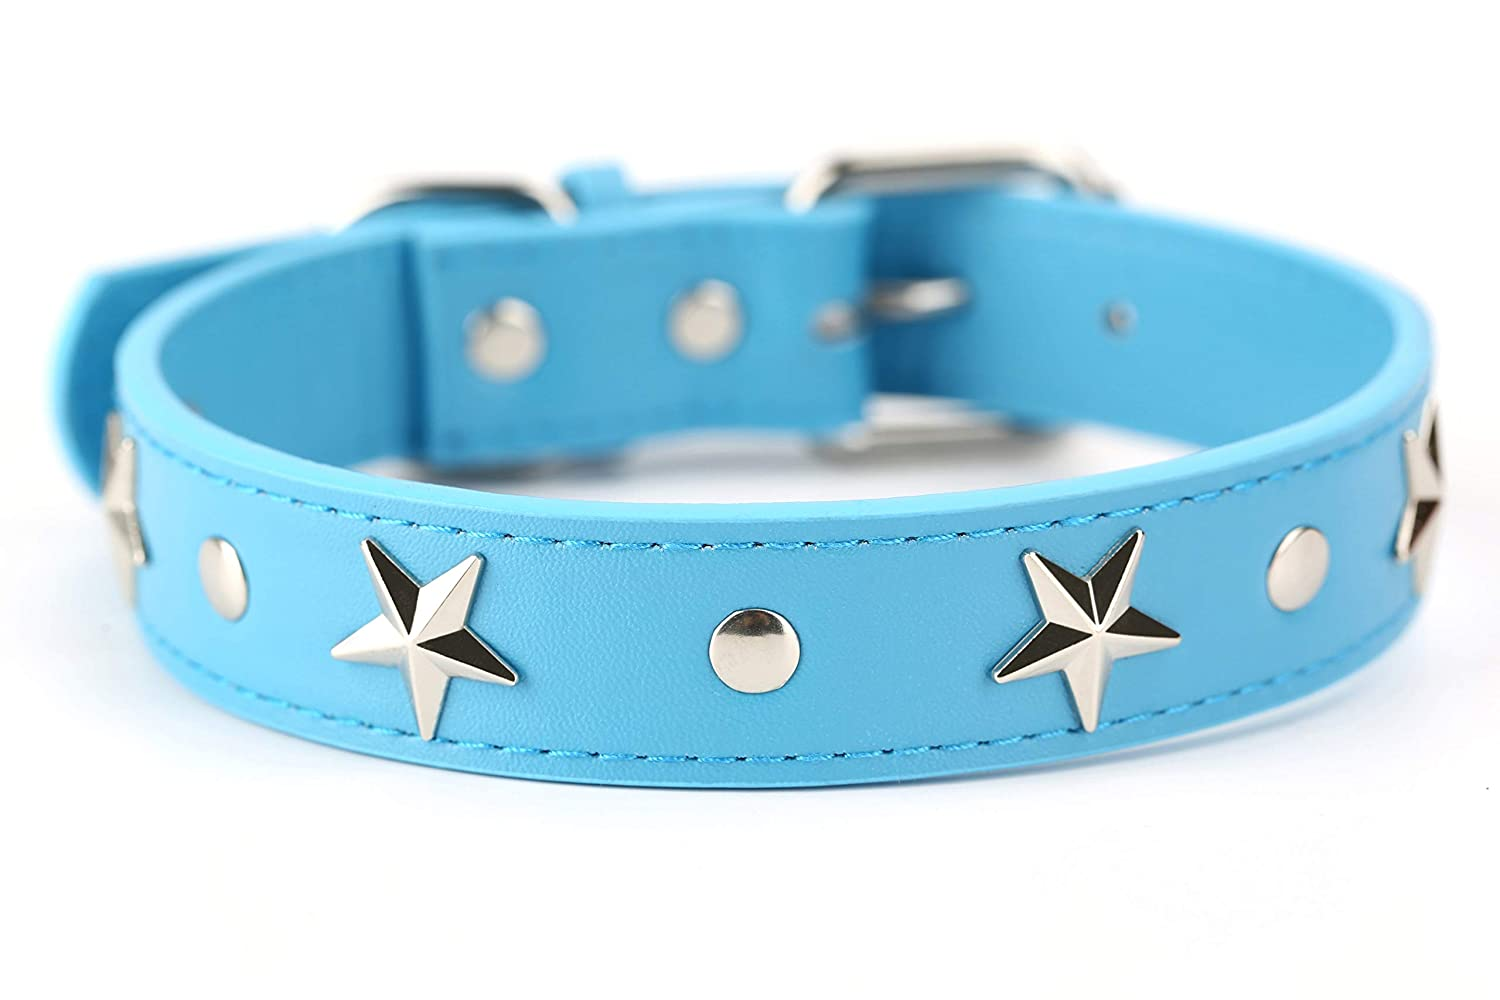 bluee Dog Size Medium bluee Dog Size Medium Mora Pets Leather Dog Collar for Small and Medium Dogs, Silver Star Studded Dog Collar (Medium, bluee)